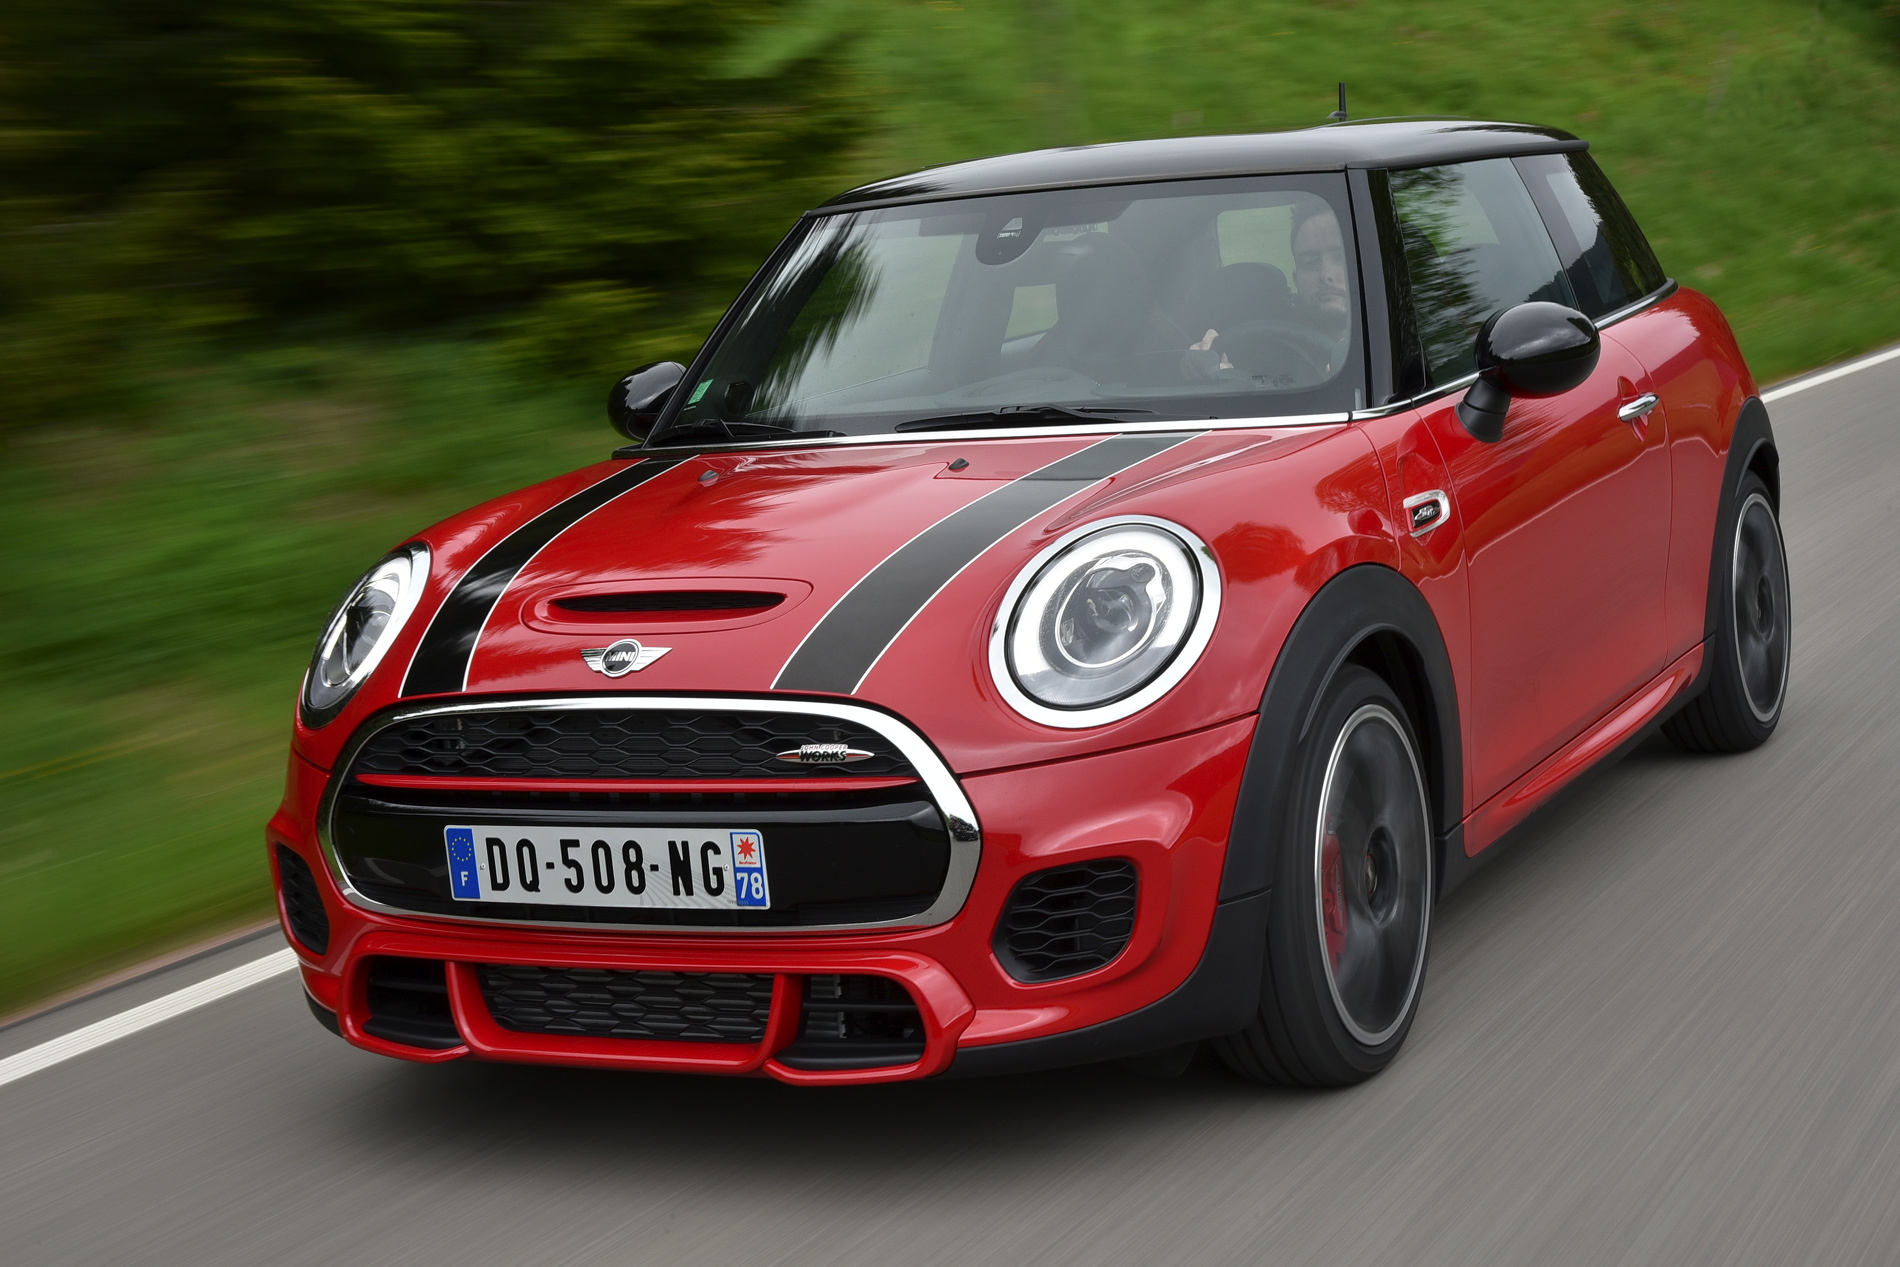 mini john cooper works f56 in chili red. Black Bedroom Furniture Sets. Home Design Ideas